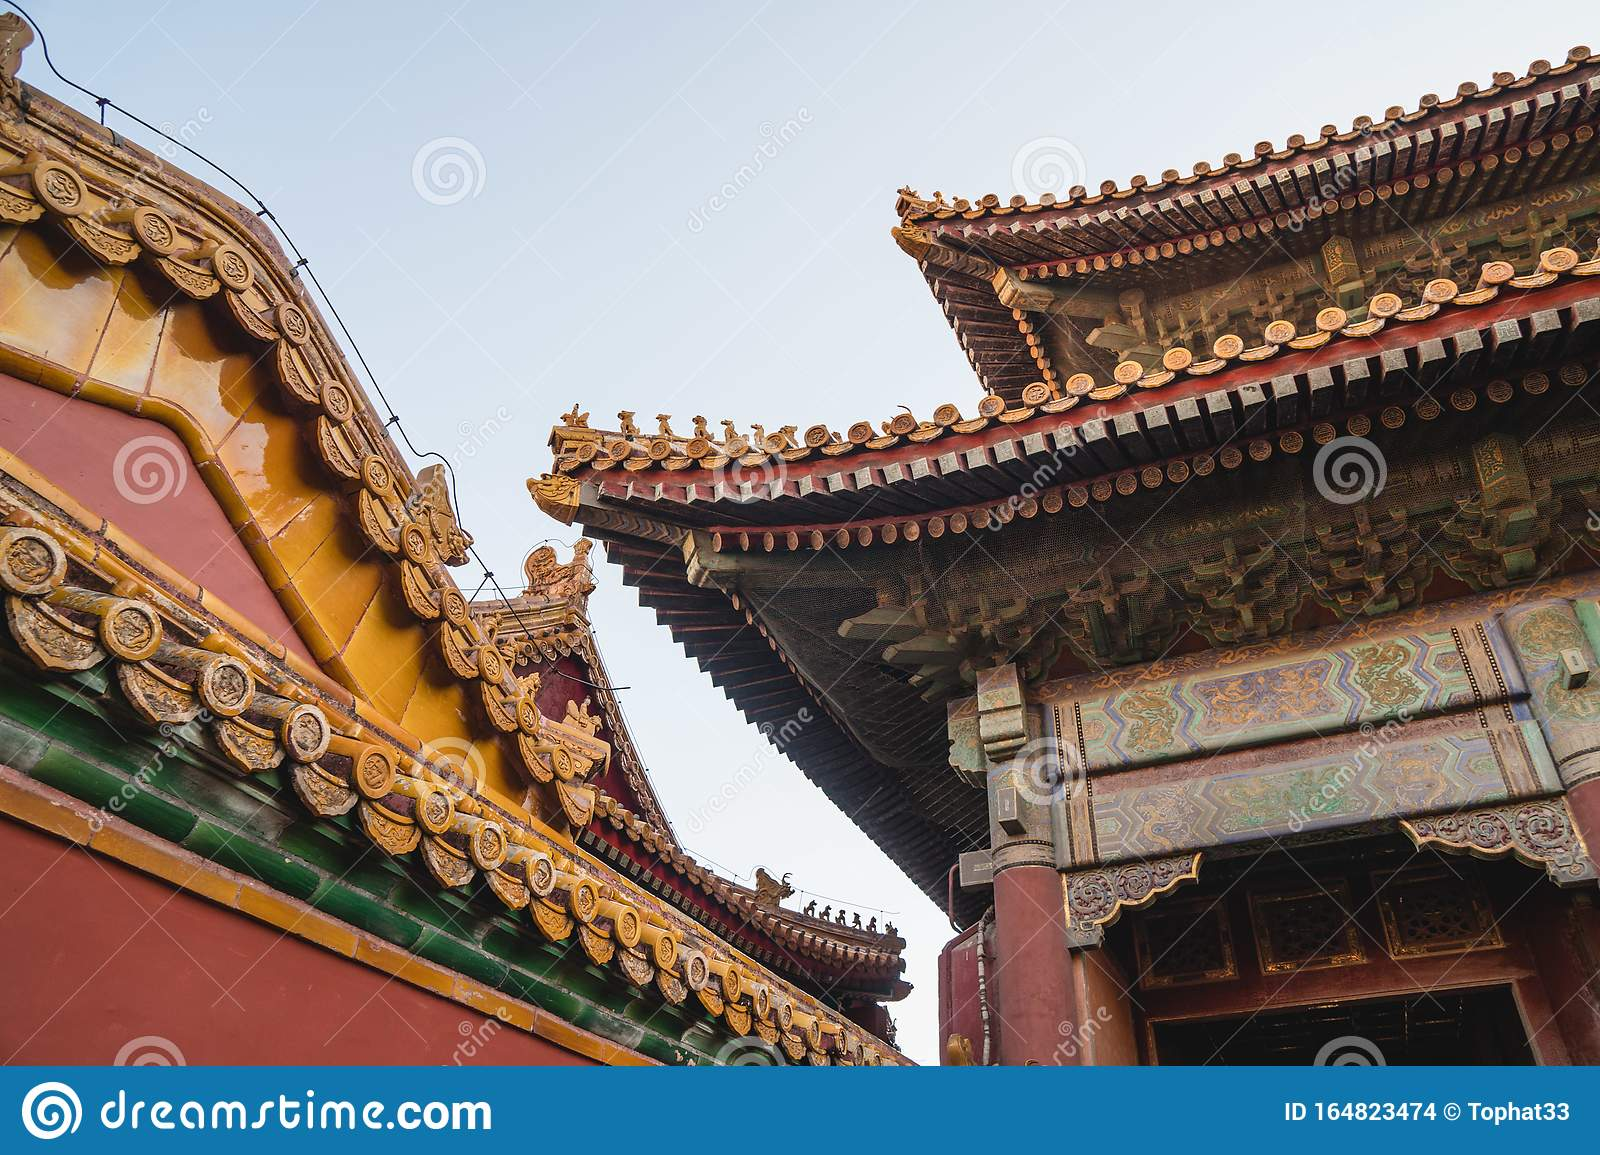 Chinese Traditional Architecture Chinese Roof Top Design In Beijing Stock Photo Image Of Beijing Forbidden 164823474